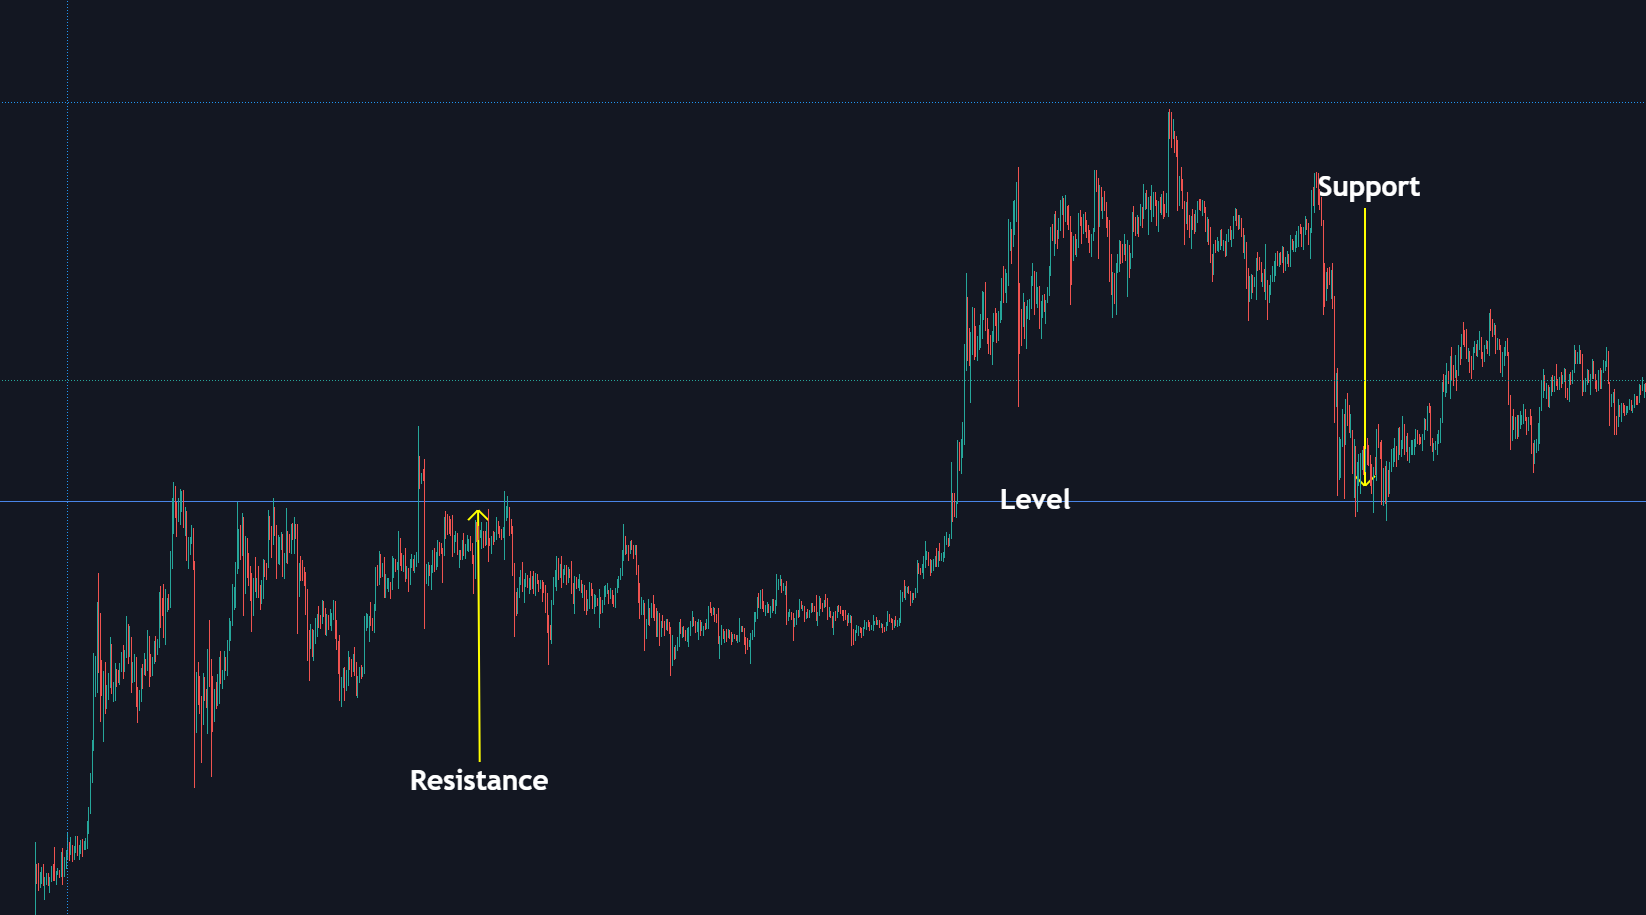 Een level is in de basis een support en resistance niveau of een interessant prijsgebied.